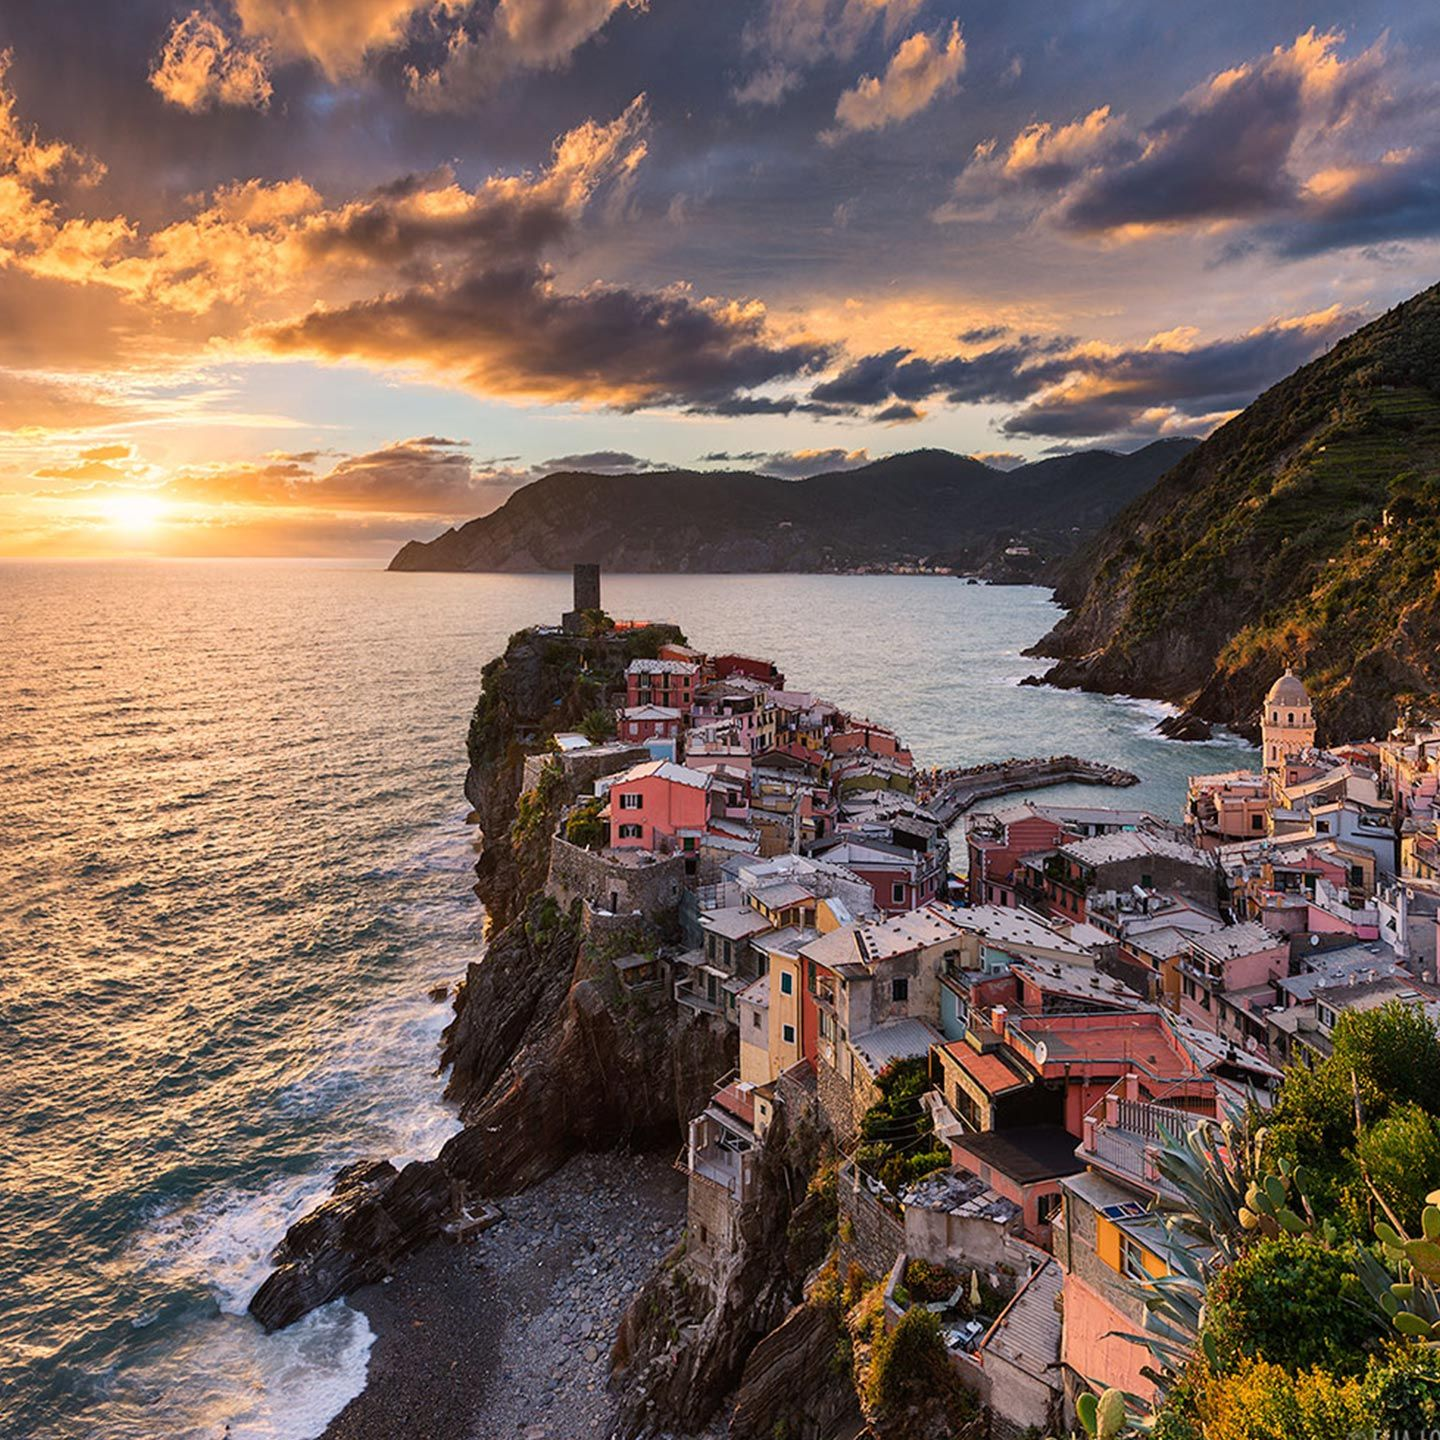 Cinque Terre - Vernazza - As photographers, artists, and world travelers, there's simply no country like Italy and we're excited to share our love of it with you on this photo tour!